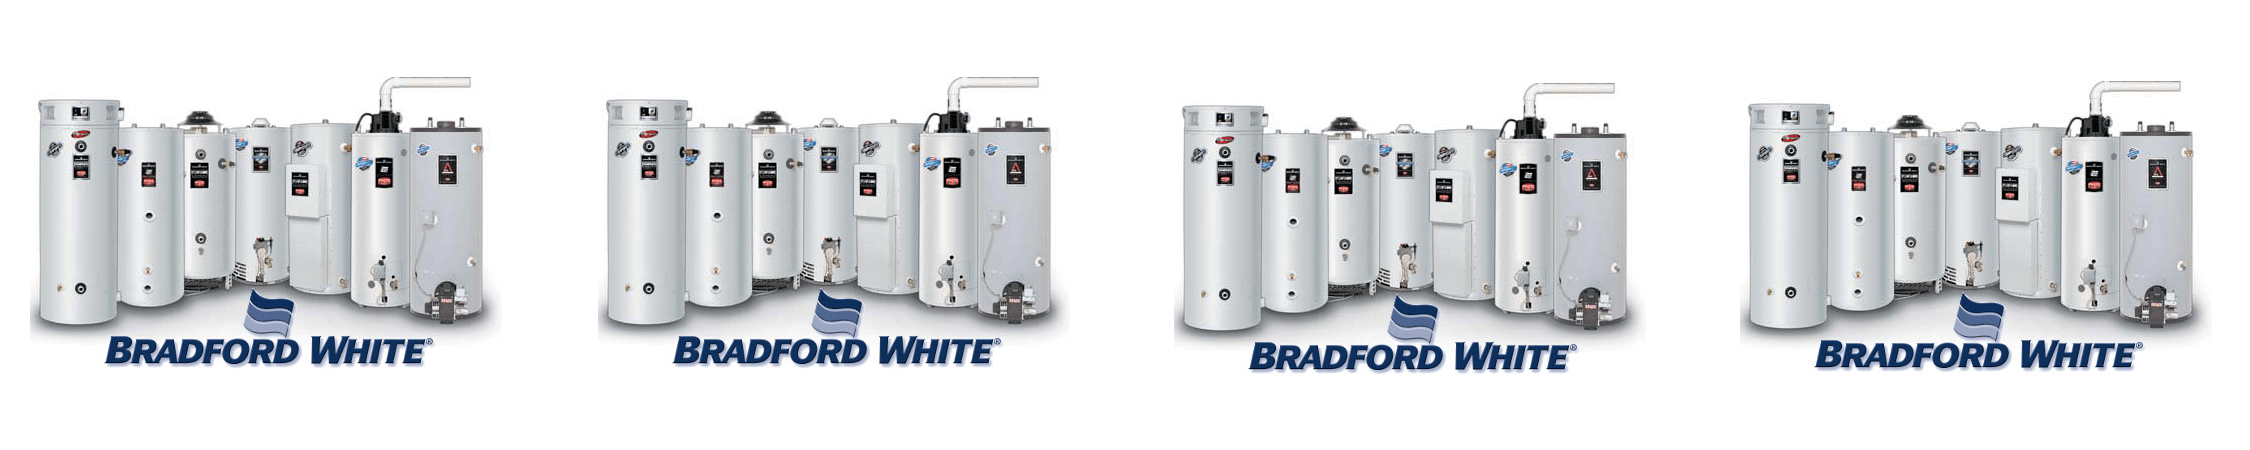 Bradford White products for slider